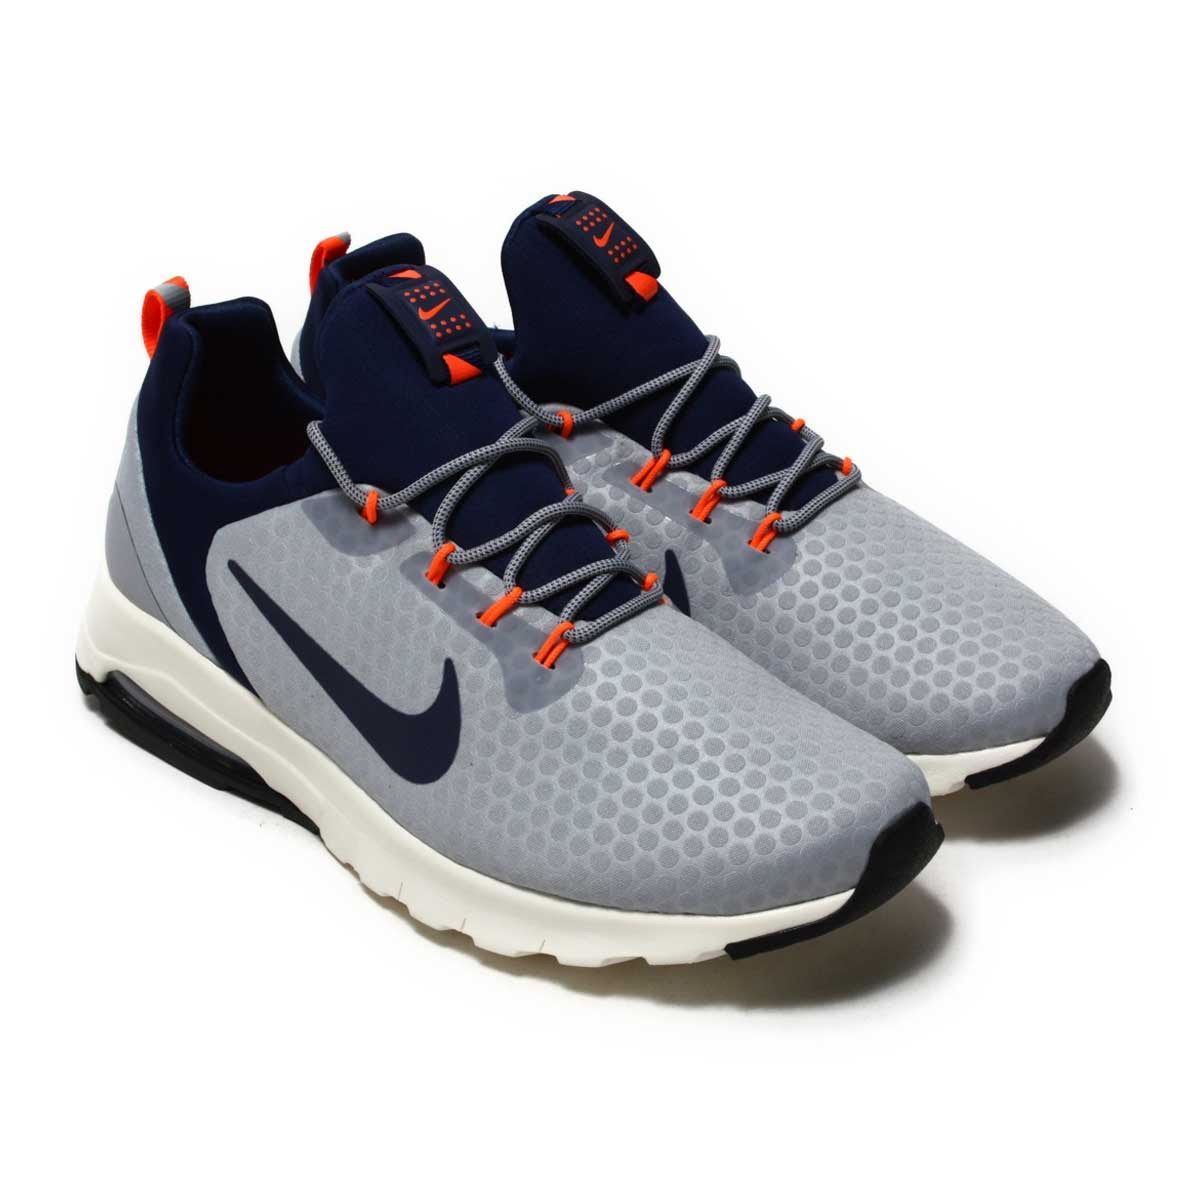 online store 67216 9047b The AIR MAX shoes which inspire made a retro.